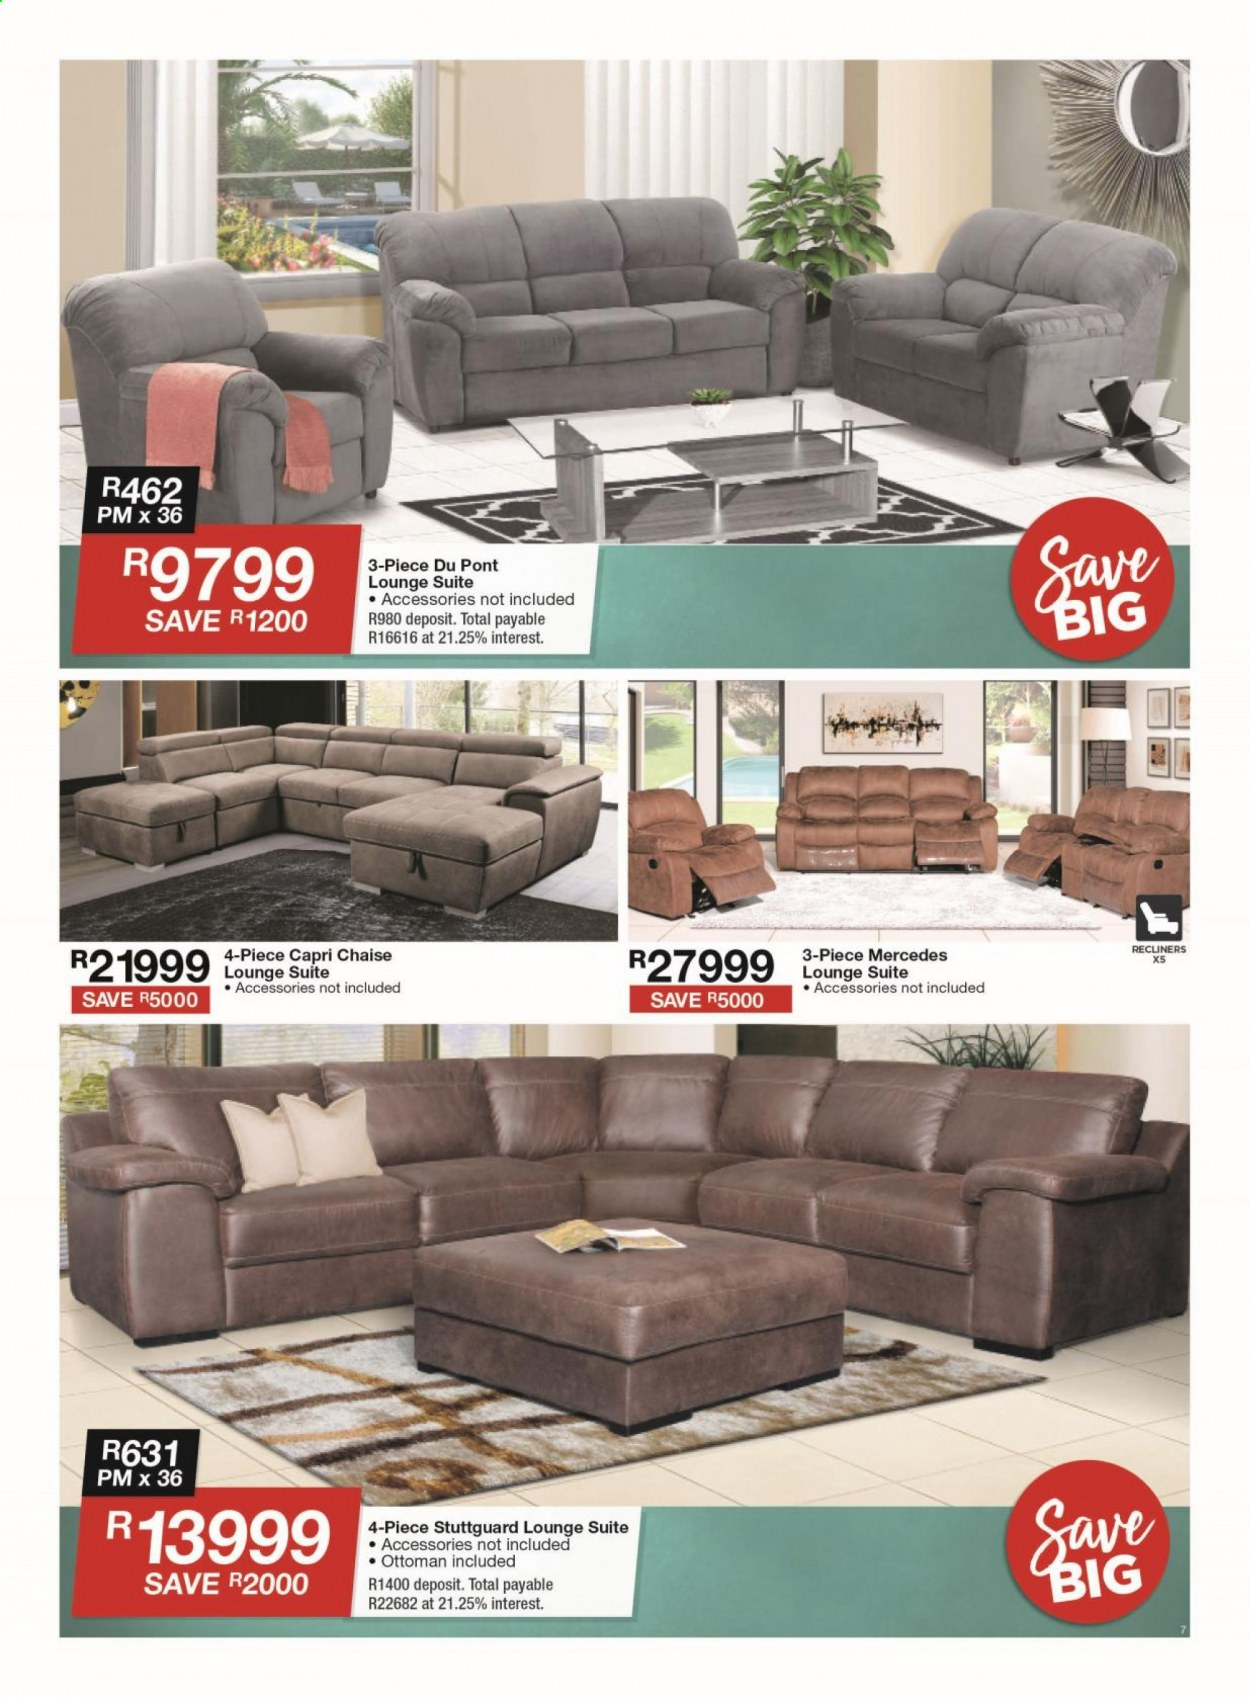 House & Home catalogue  - 04.06.2020 - 04.19.2020. Page 7.